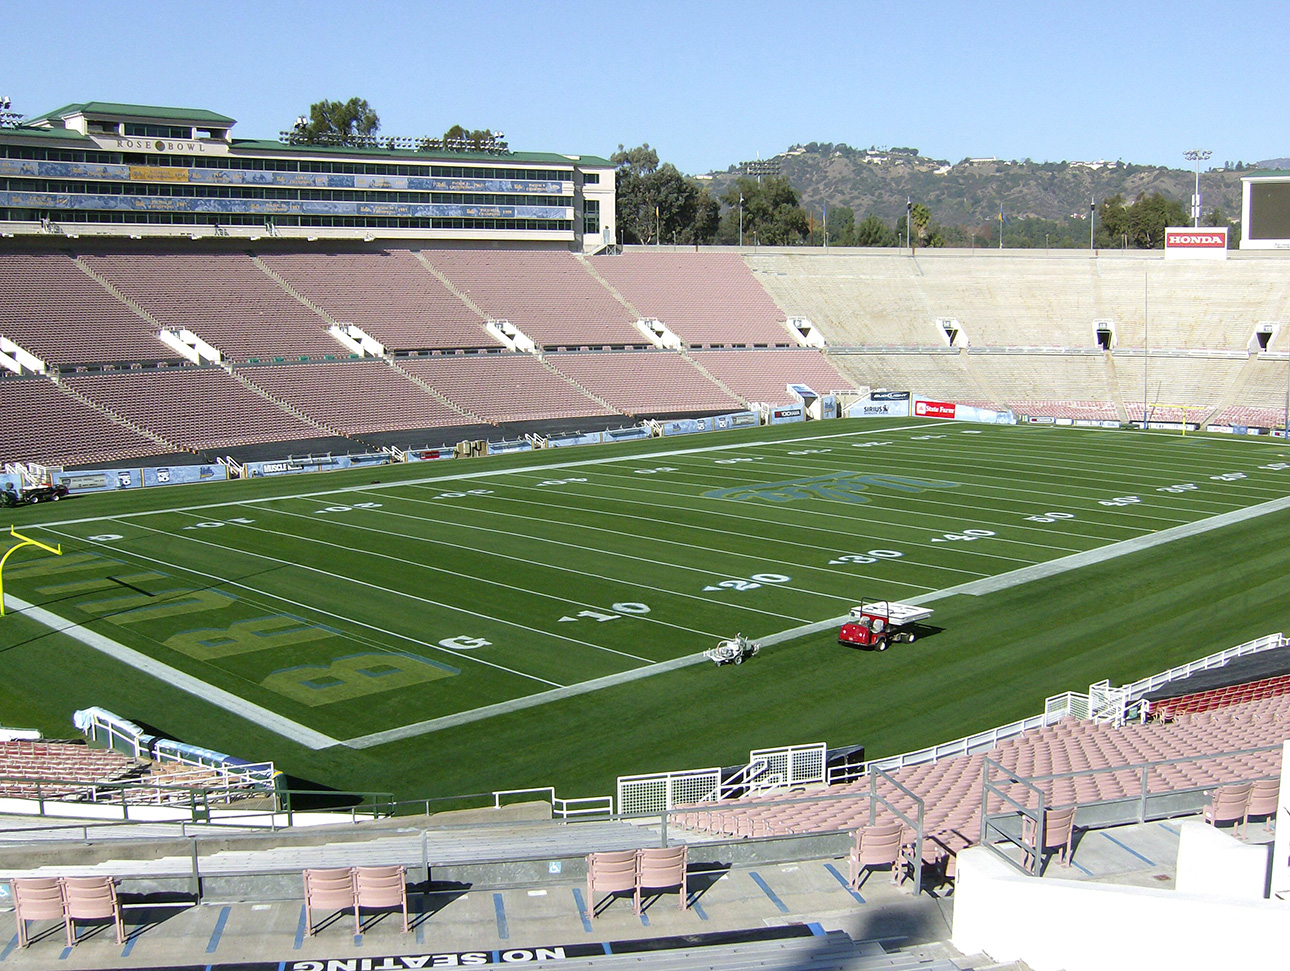 rose-bowl-renovation-improvement-04